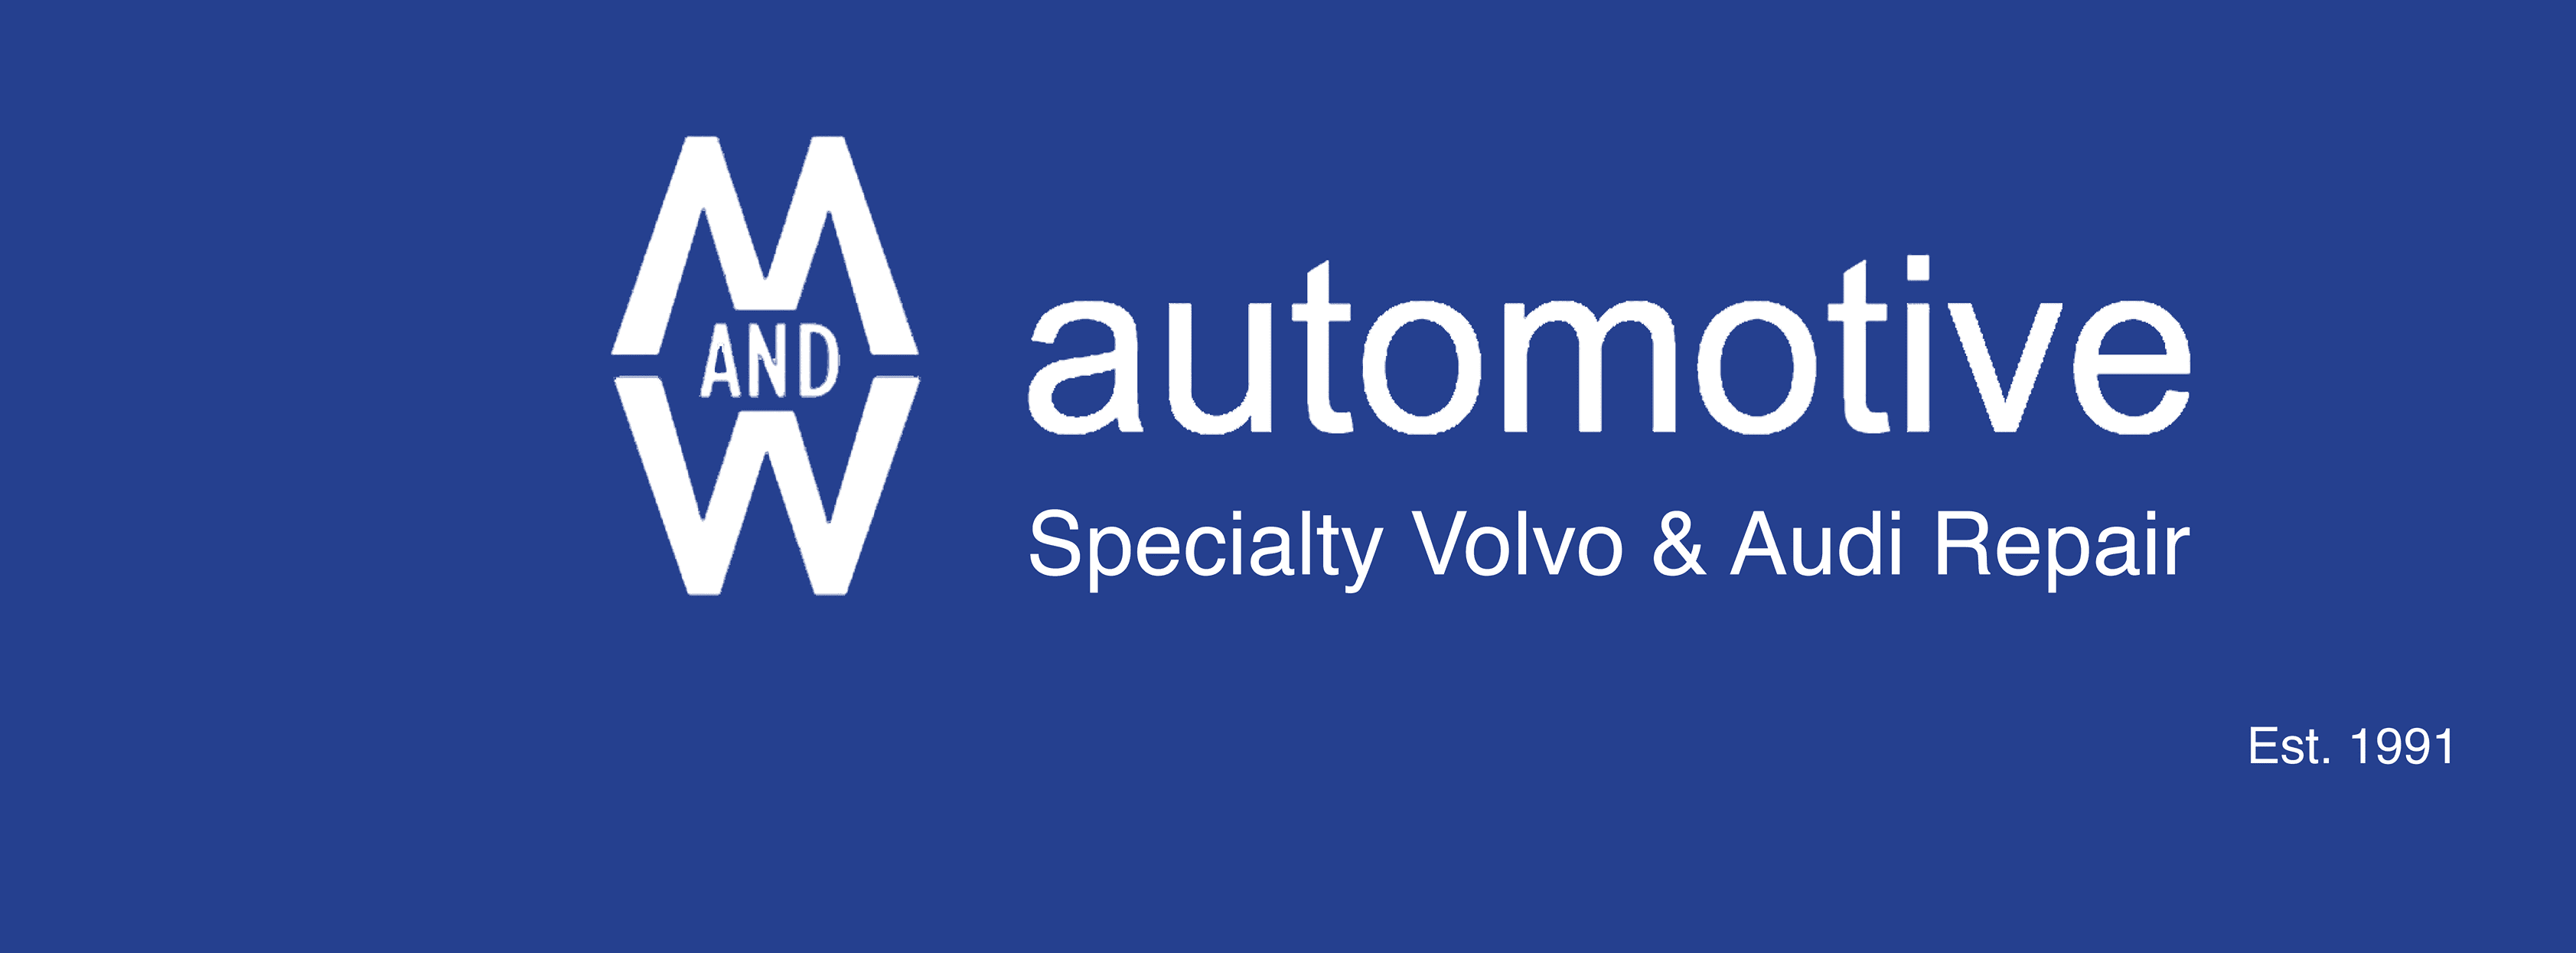 repair m volvo service w or automotive and audi services portland